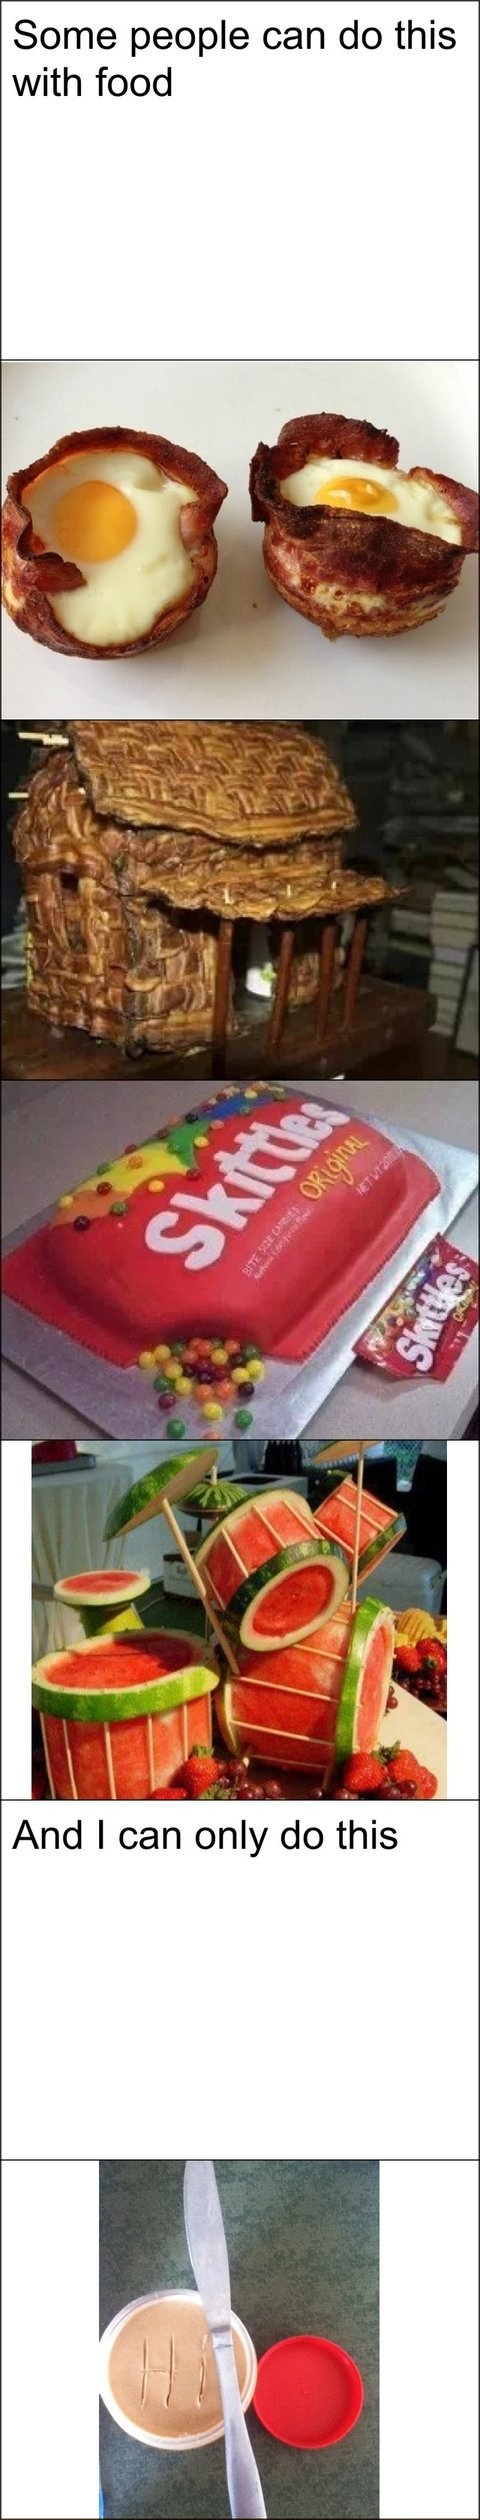 Tags funny pics funny pictures humor lol omnomnom eating phase 2